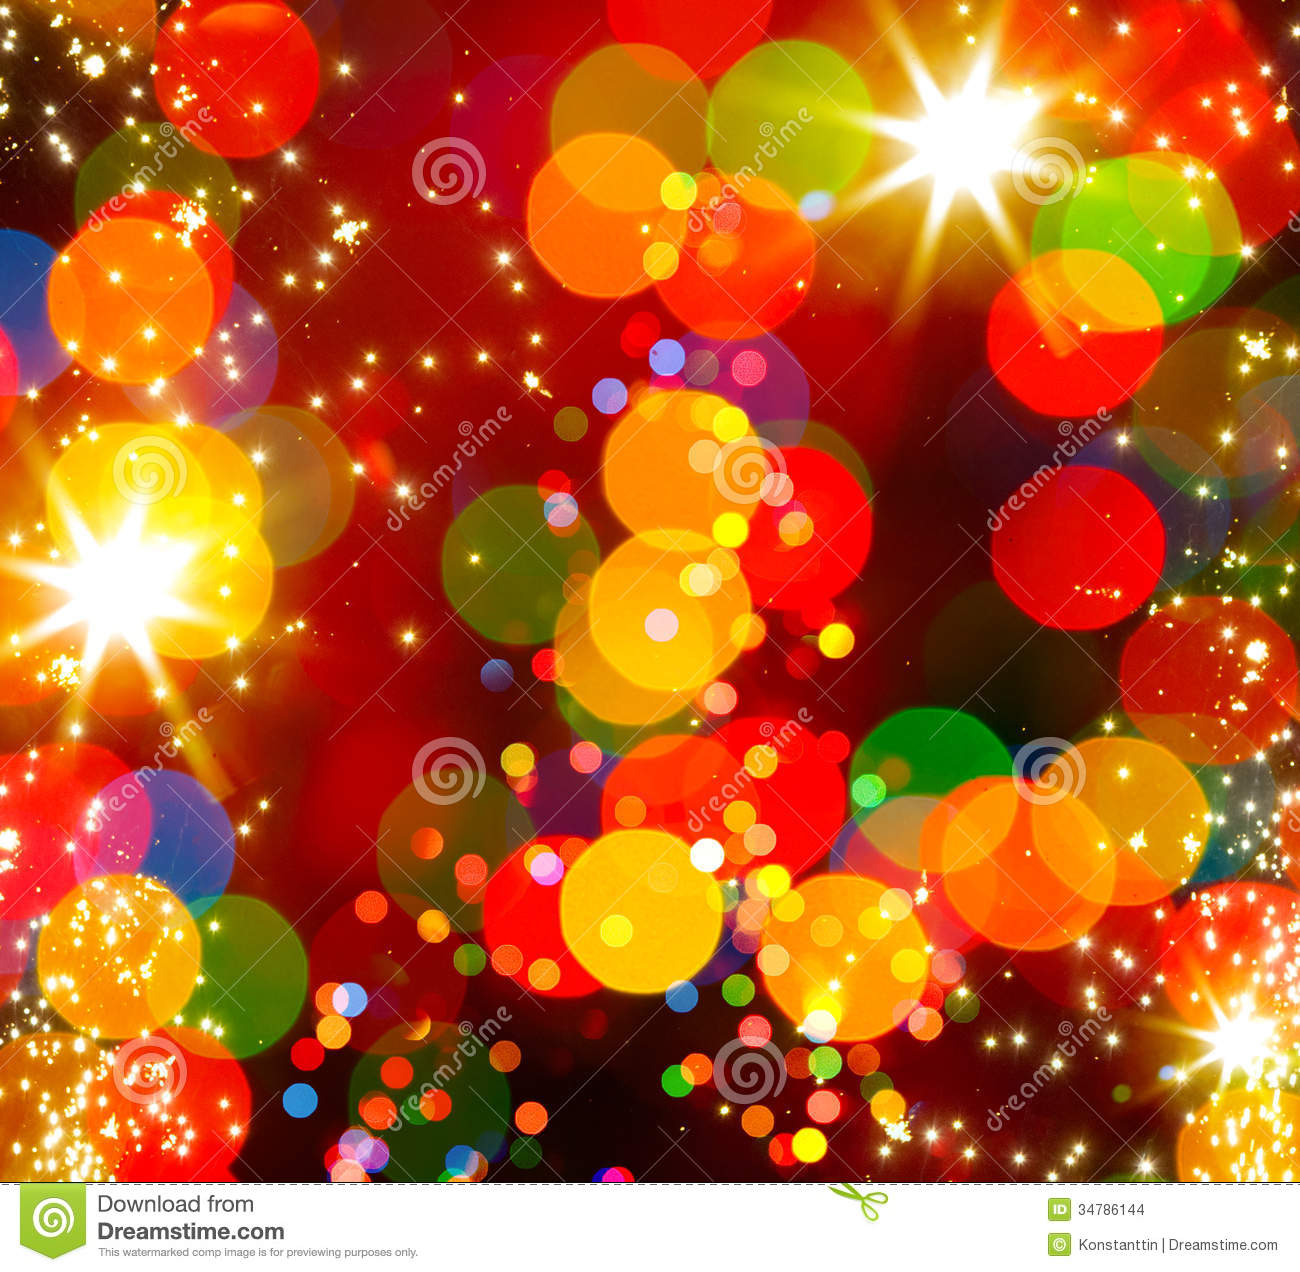 Abstract Christmas Tree Light Background Stock Images - Image ...